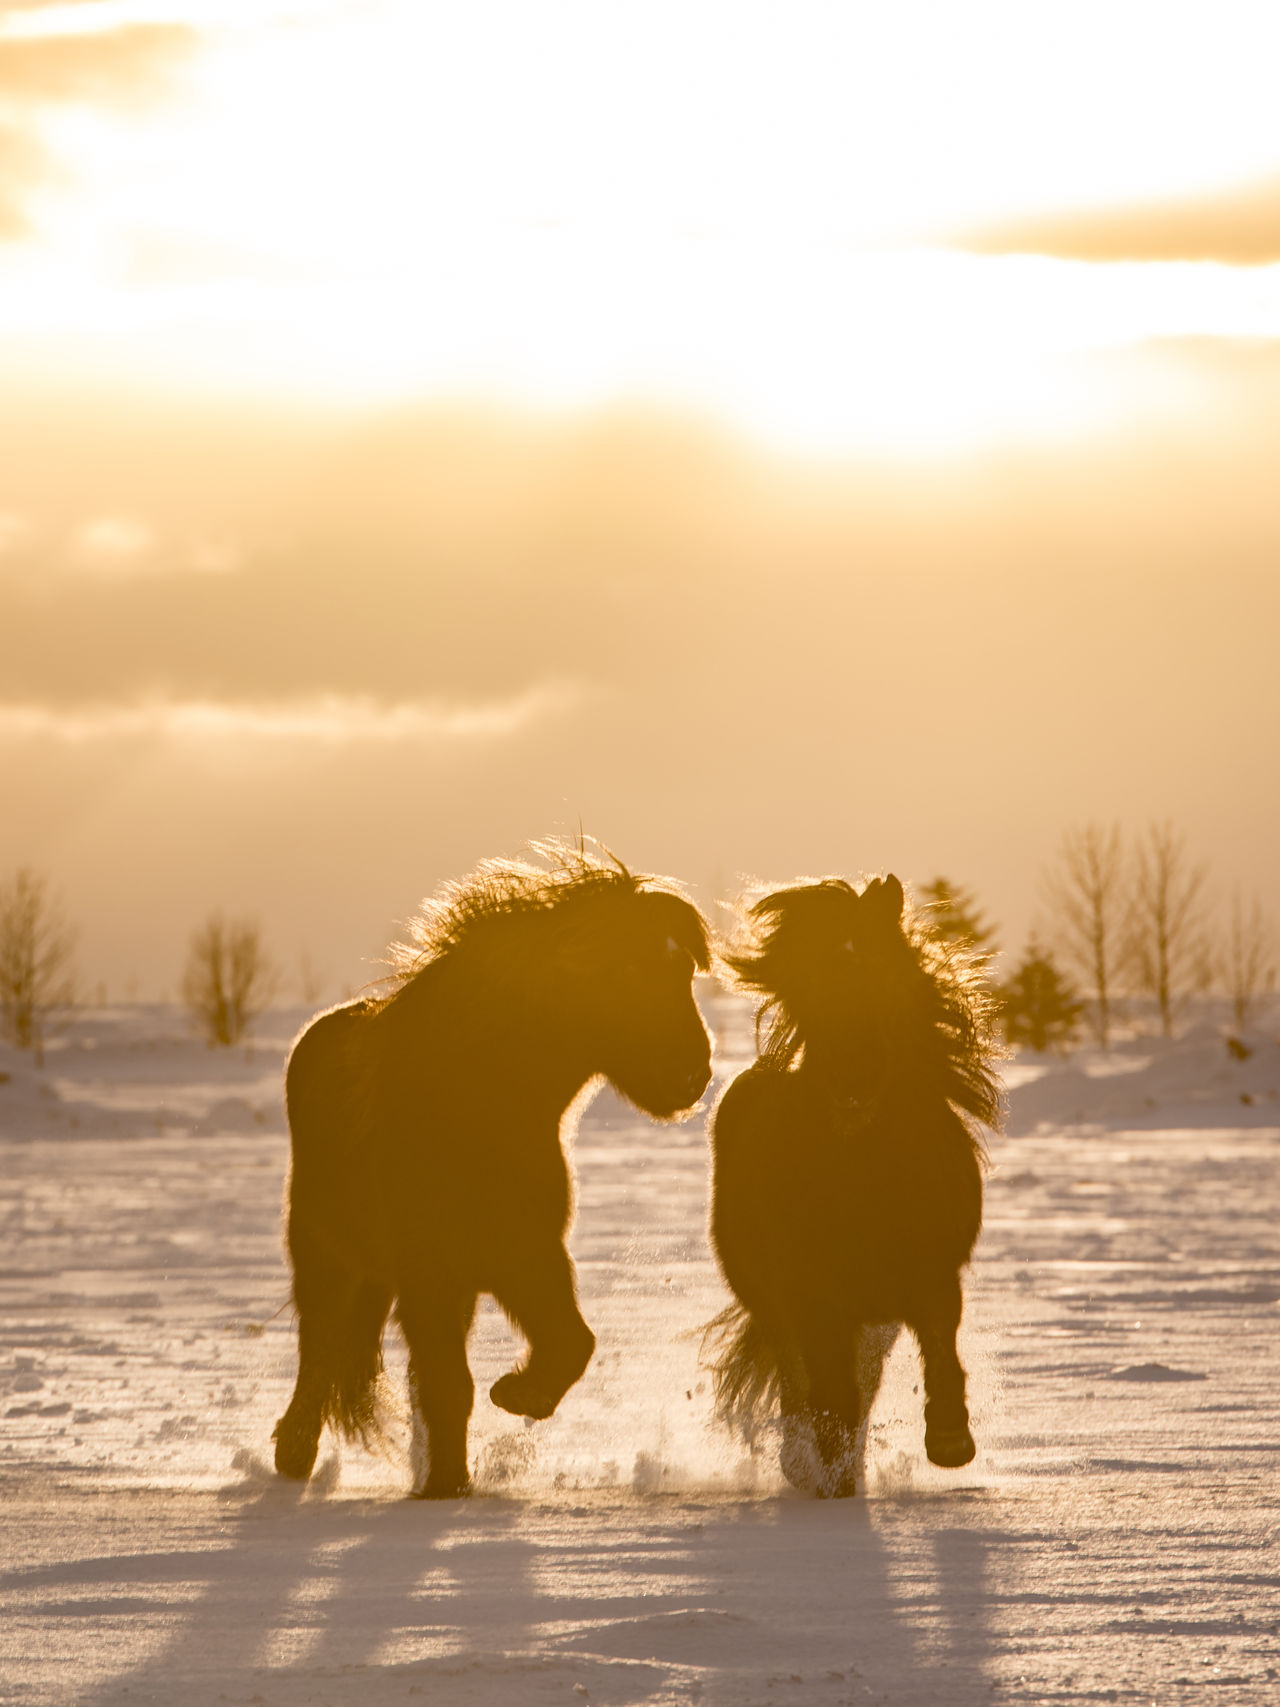 Running through the deep snow, together. Animal Copy Space Horses Iceland Mammal Nature No People Orange Outdoors Running Scandinavia Snow Sunset Winter Yellow